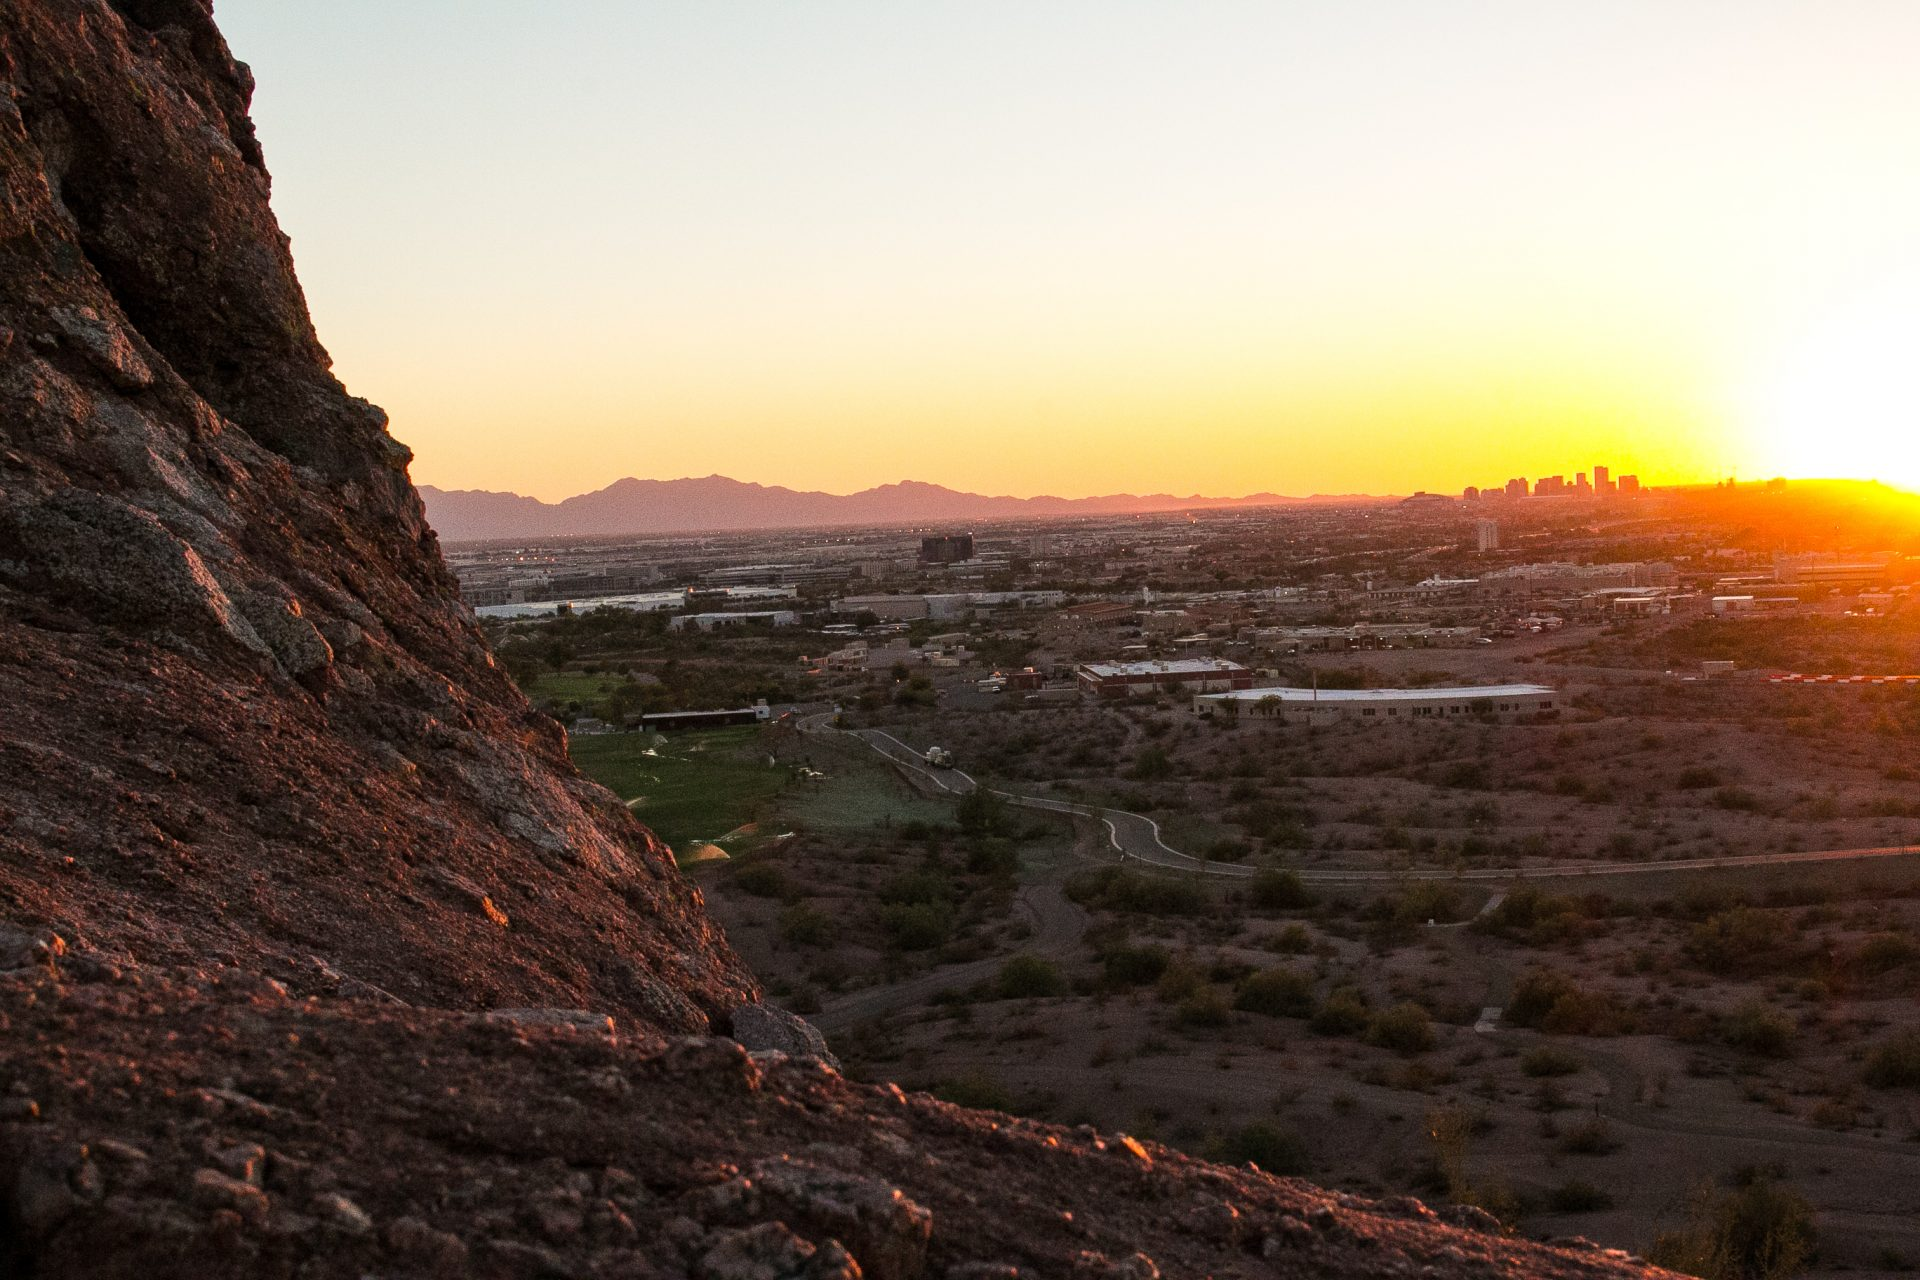 downtown Phoenix from Papago park during sunset